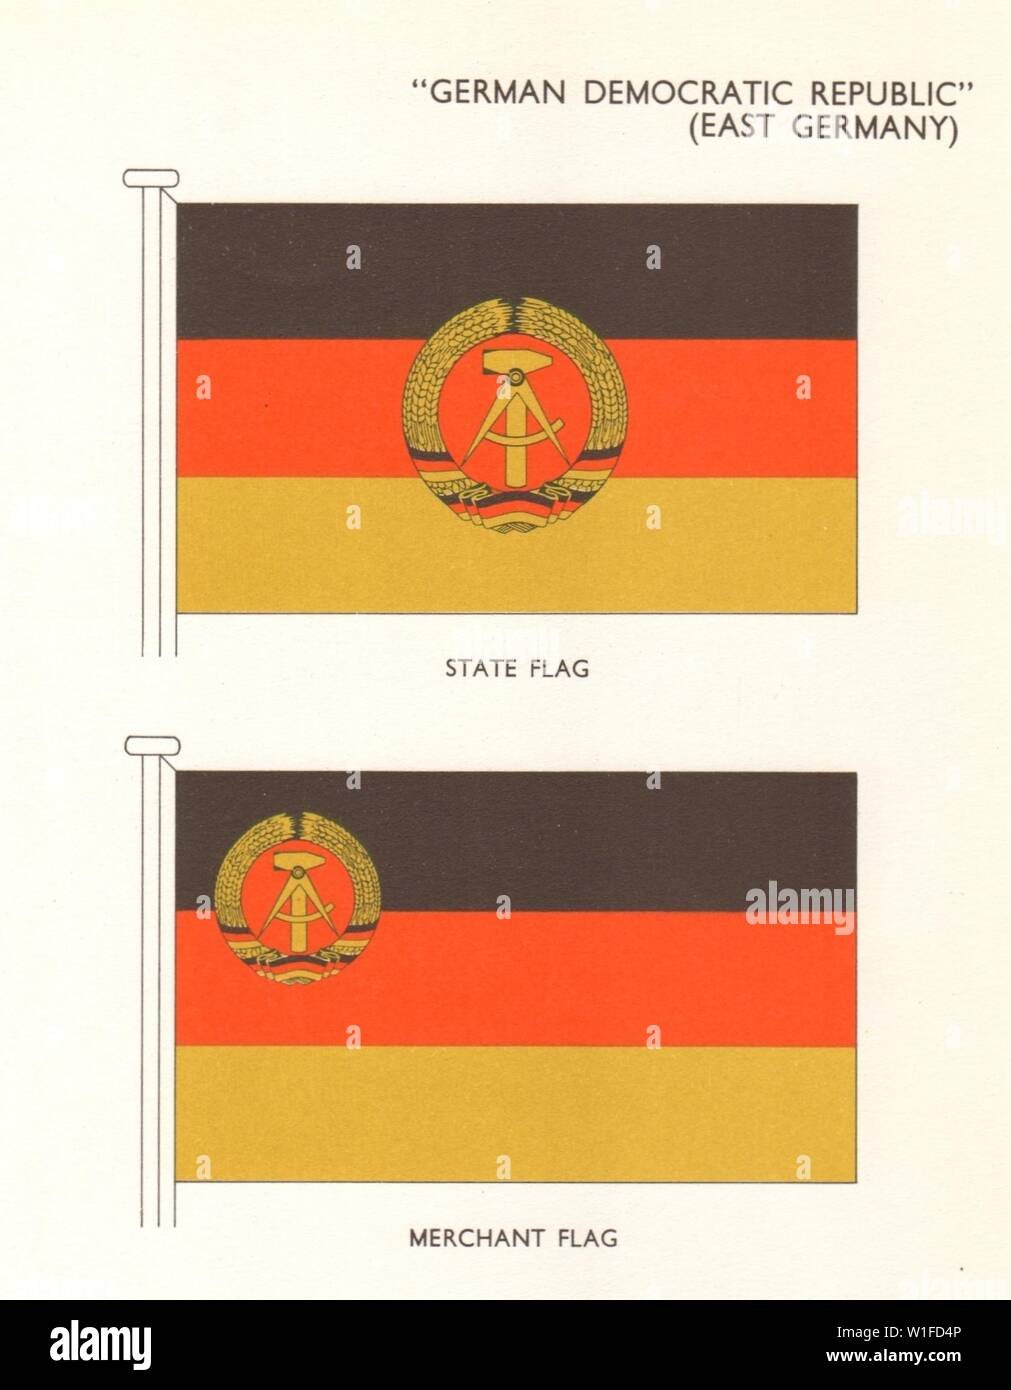 GERMAN DEMOCRATIC REPUBLIC FLAGS  East Germany  State Flag